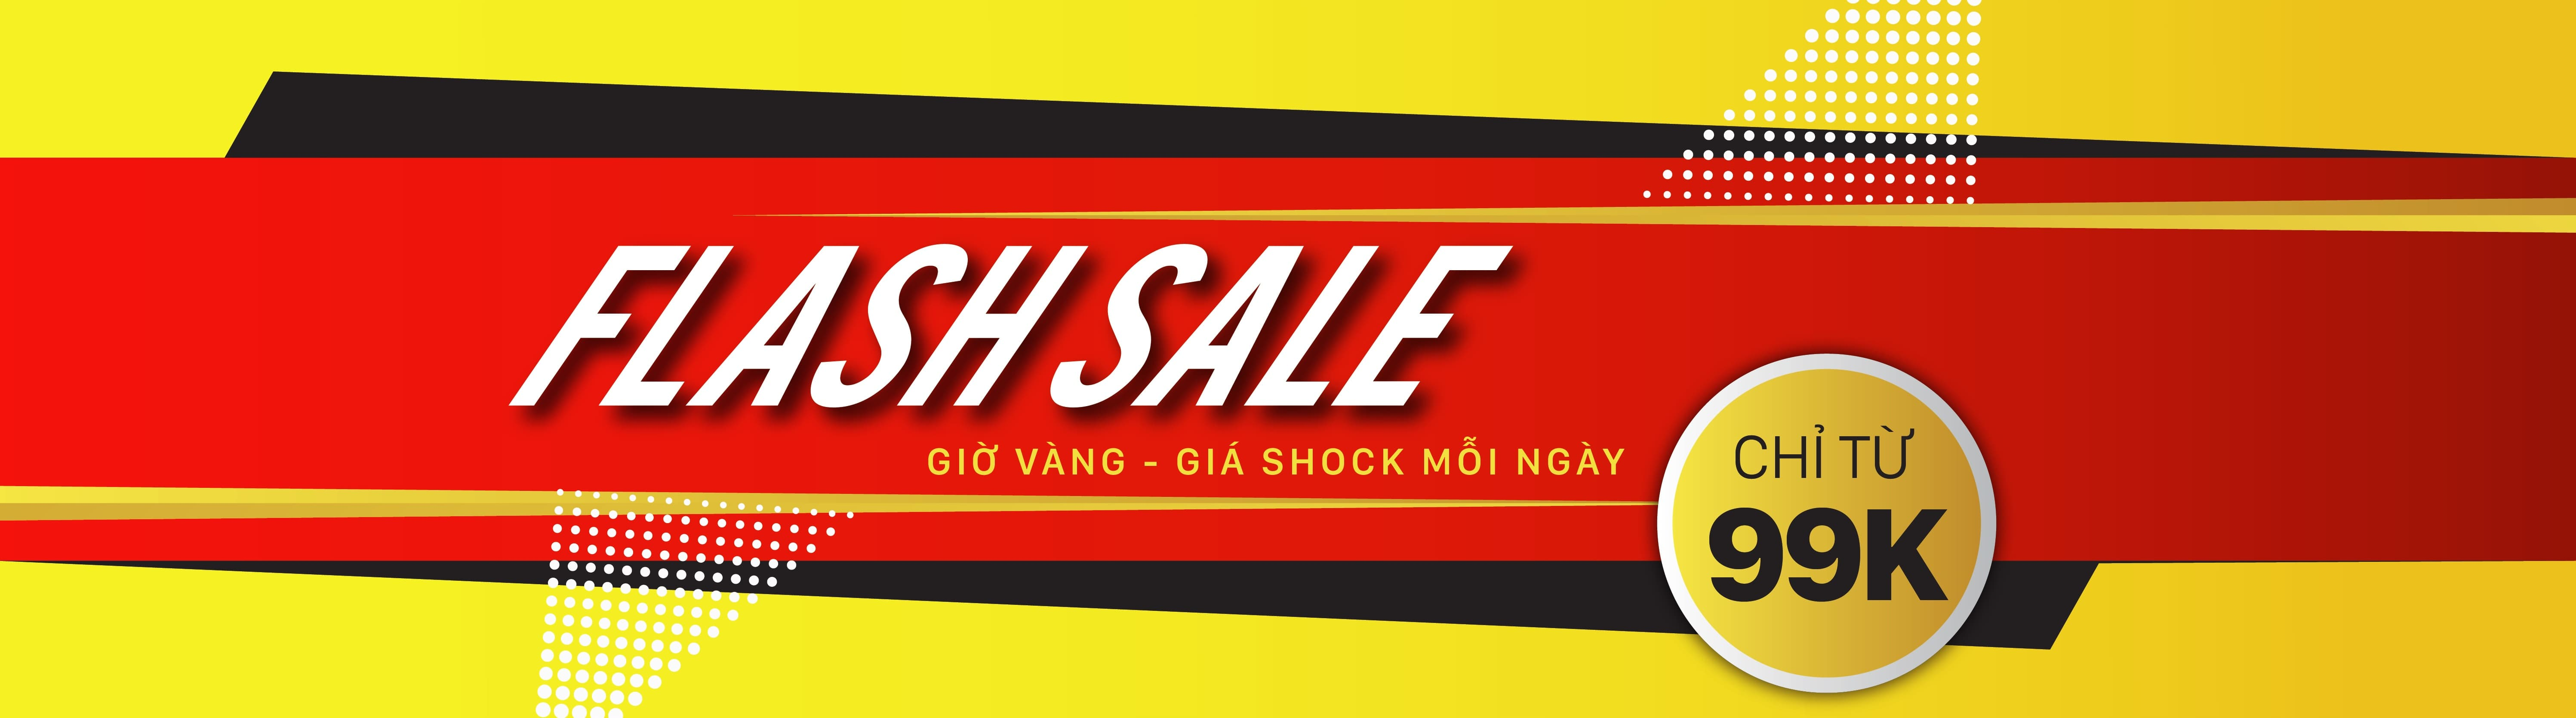 Banner flash sale pc